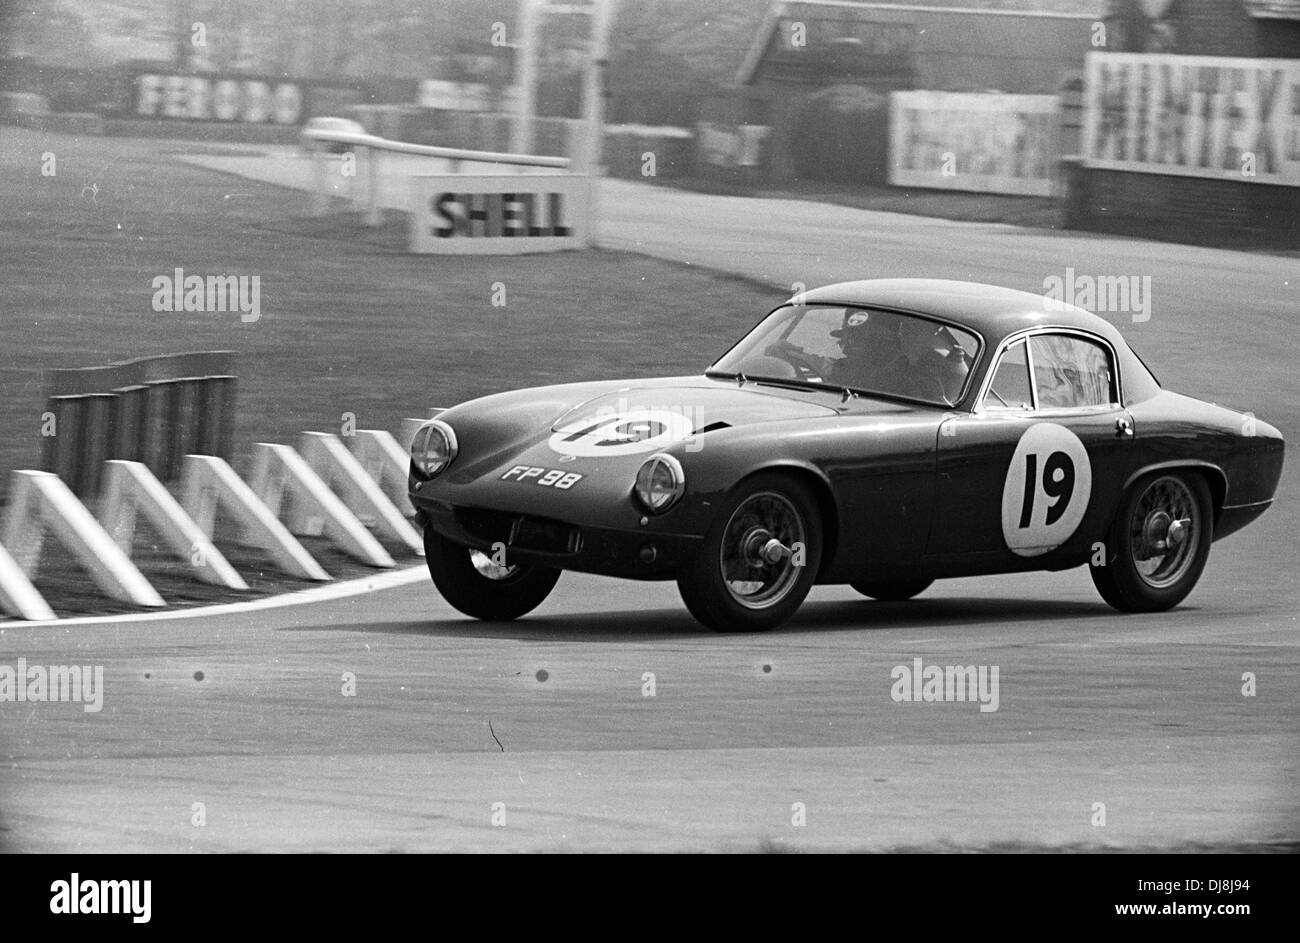 Lovely A Lotus Elite Racing Into Tattu0027s Corner In The Aintree 200 Race, England 30  April